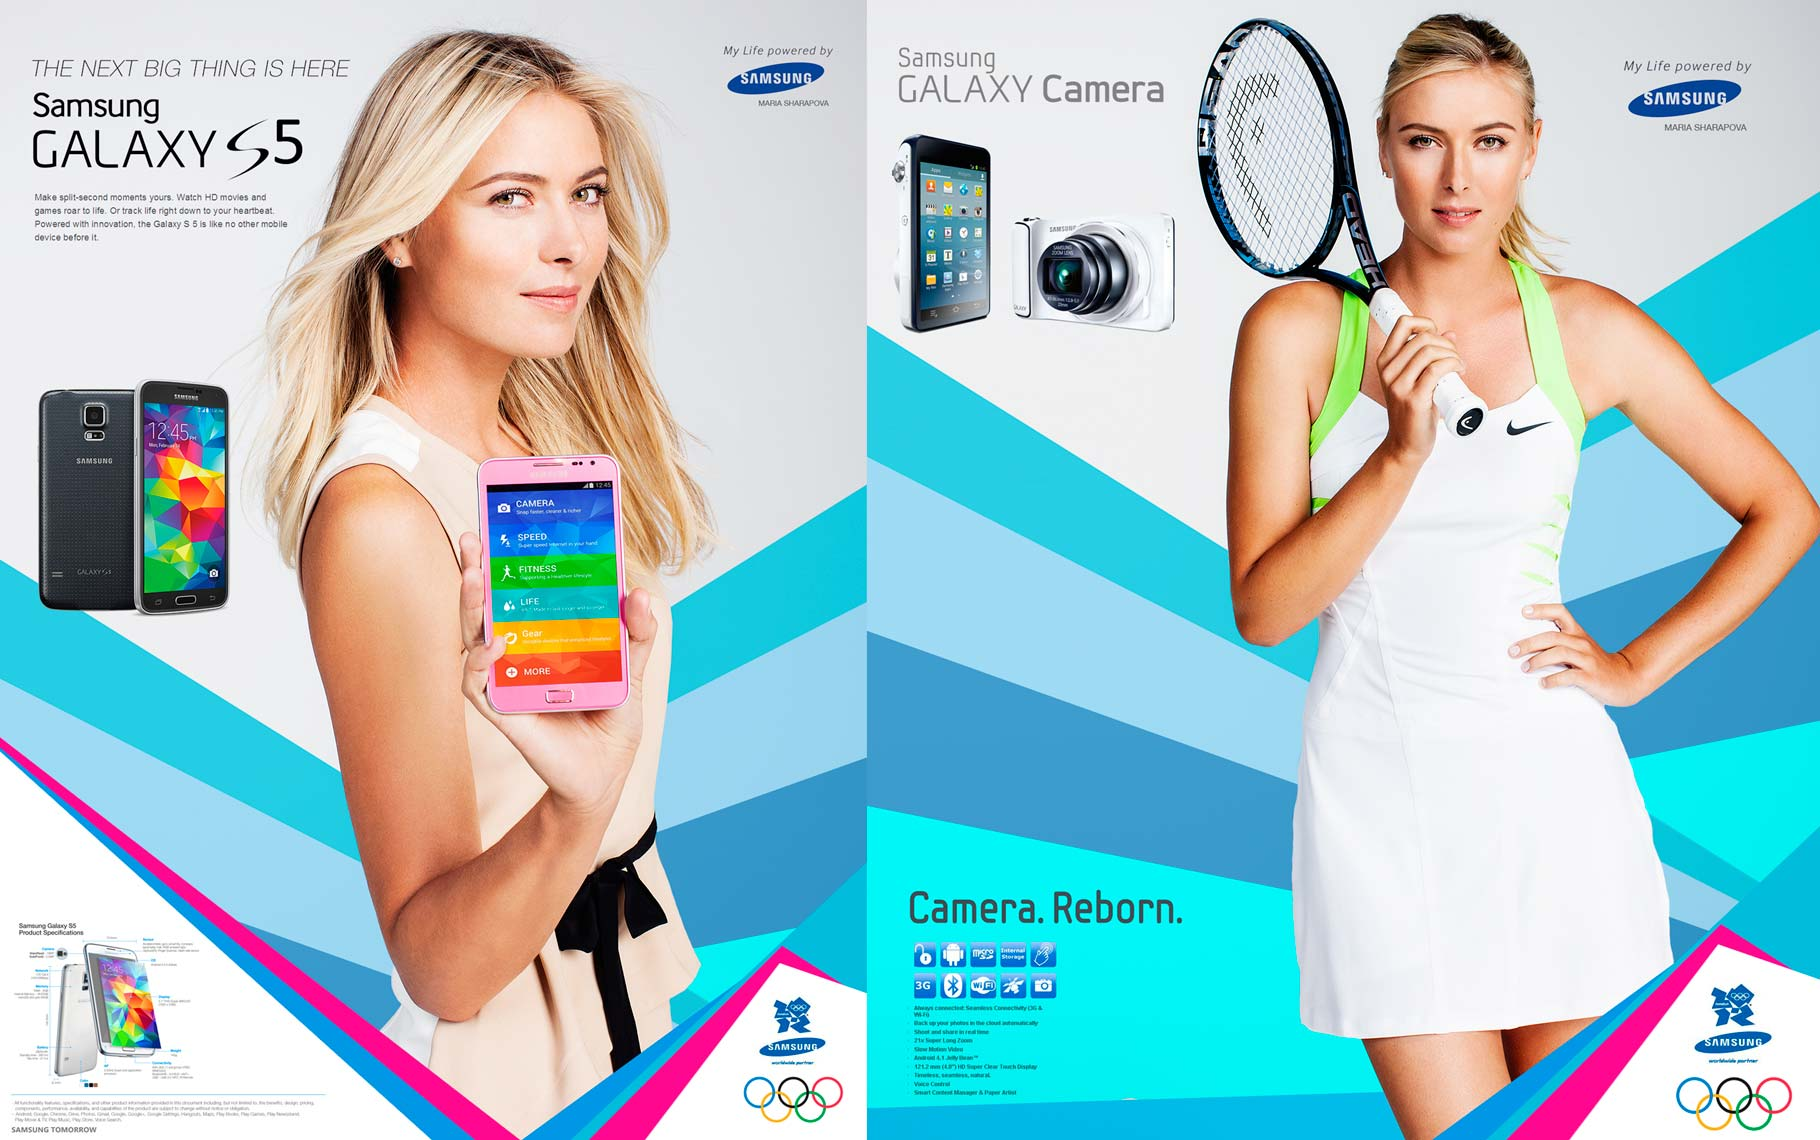 Chris-Hunt-Photography-Advertising-Maria-Sharapova-Samsung-424